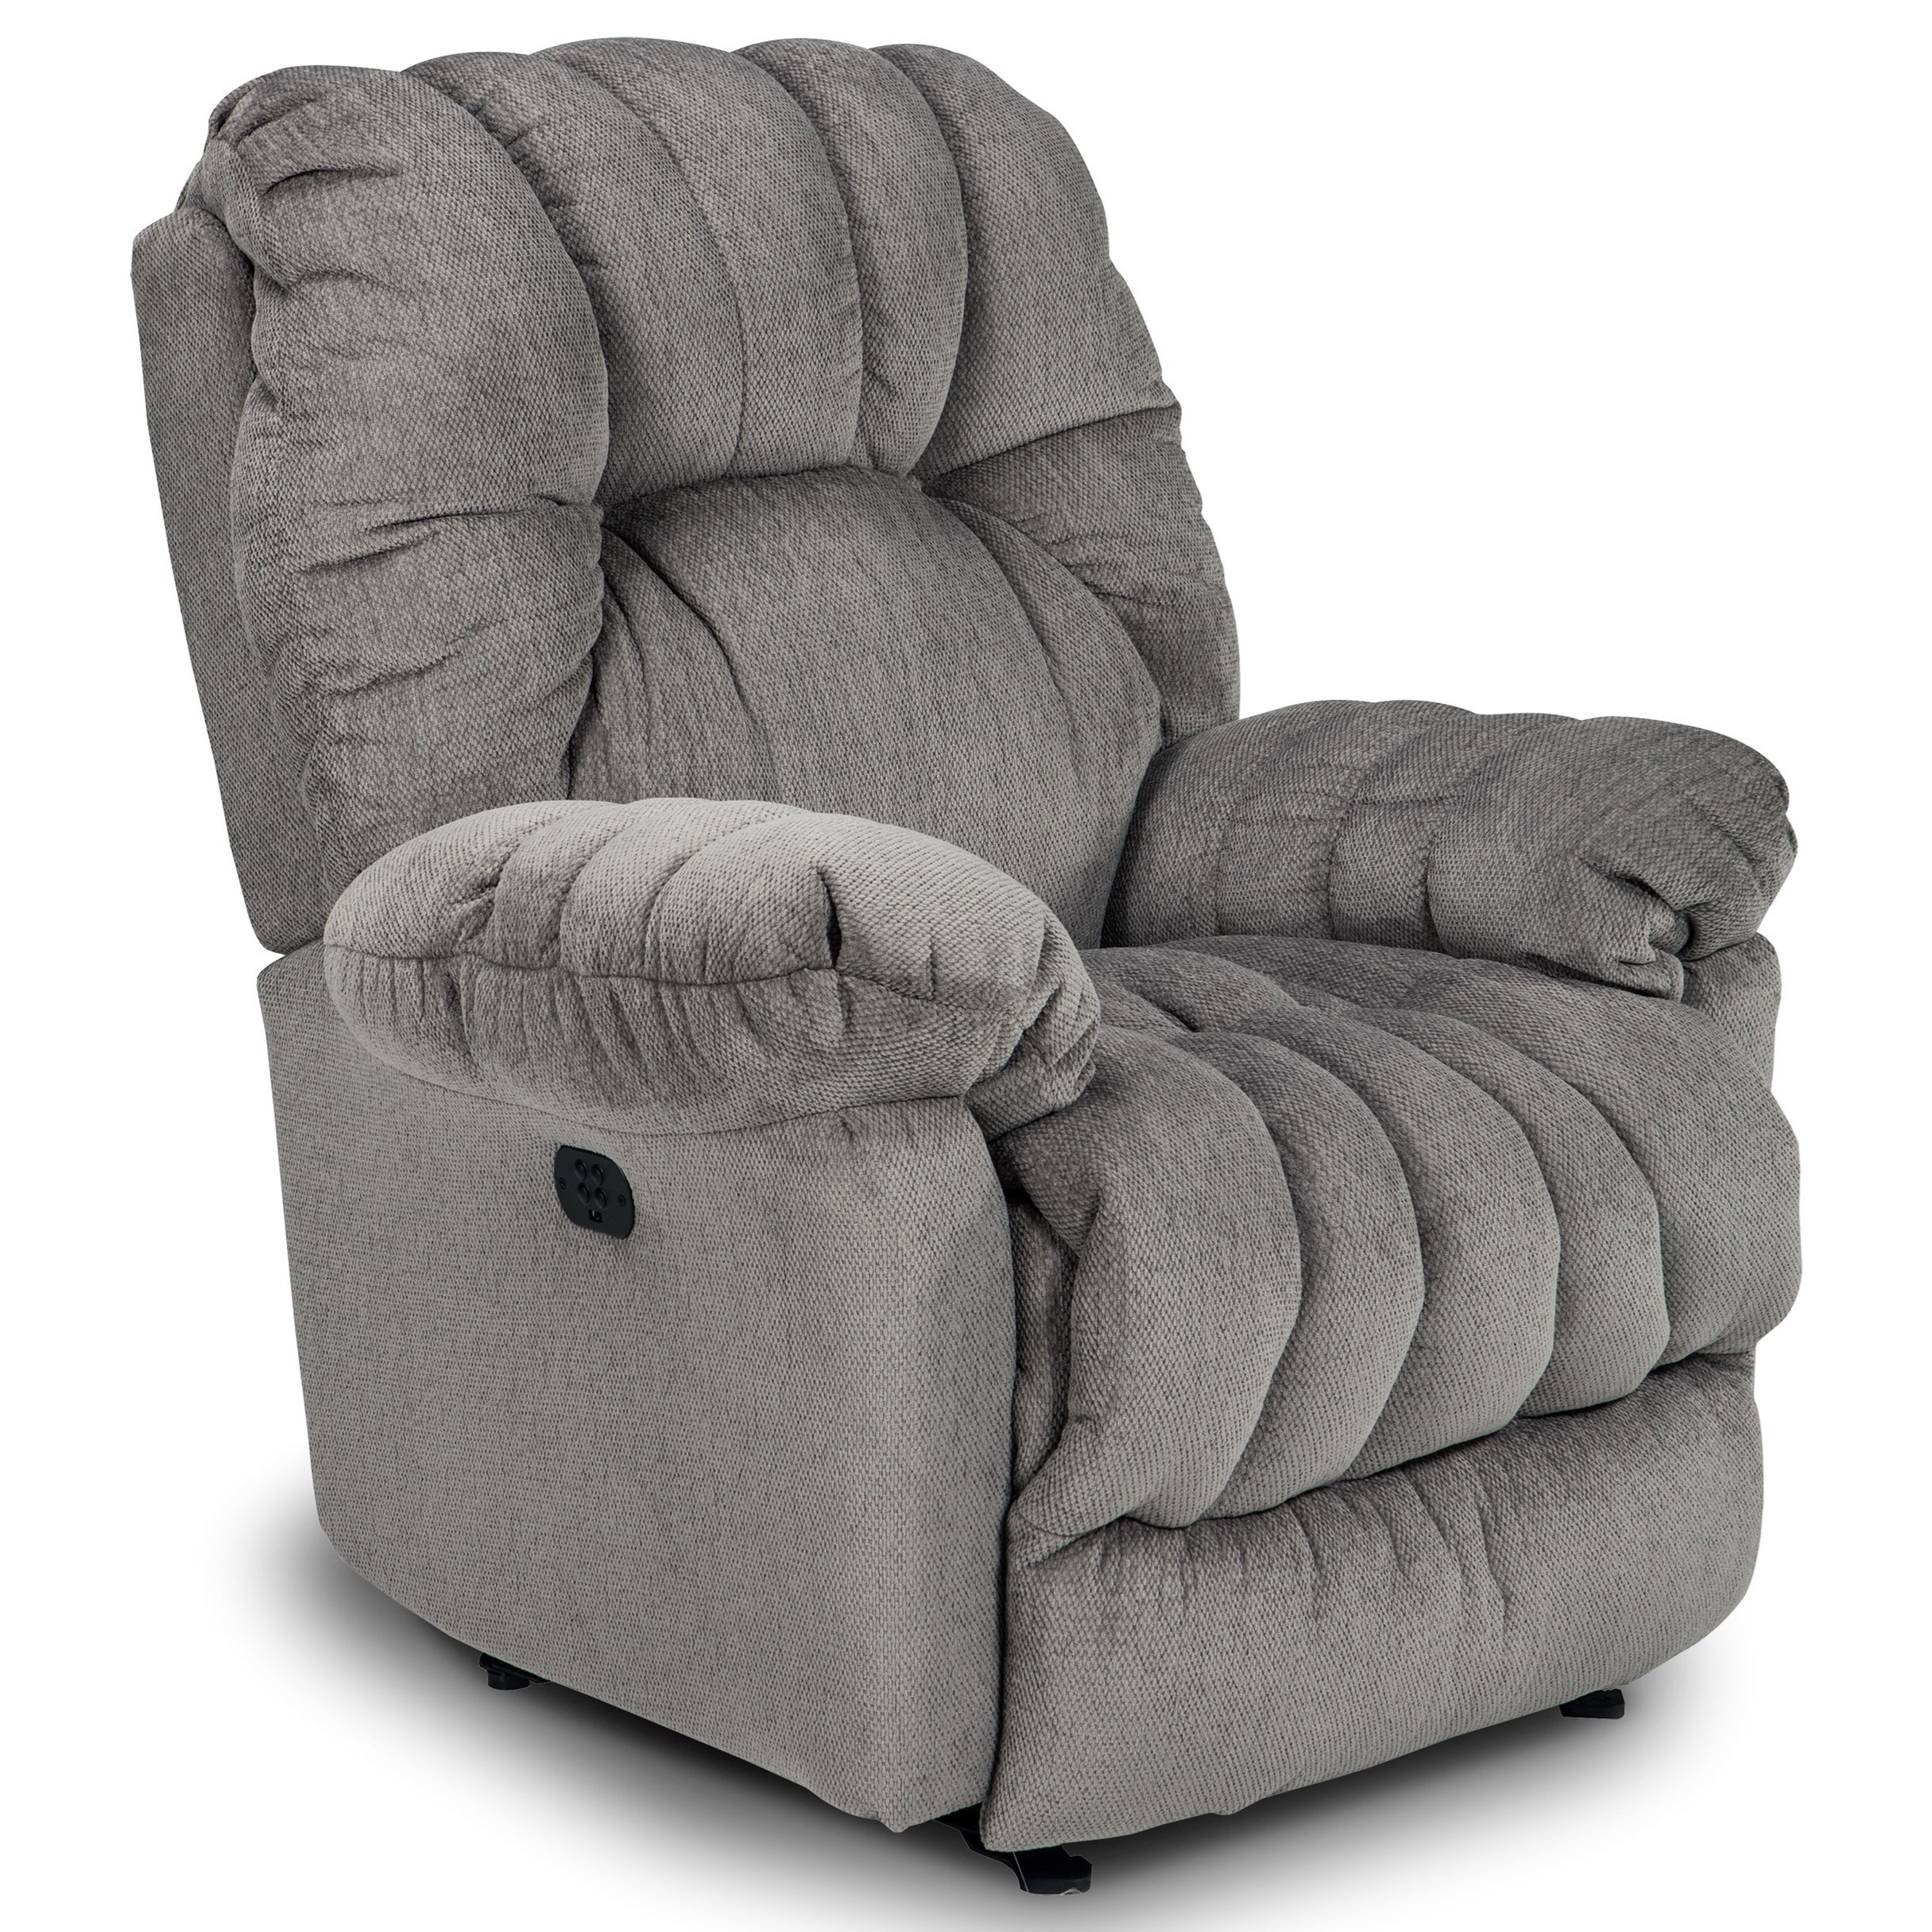 Recliner Rocking Chair Best Home Furnishings Medium Recliners Conen Swivel